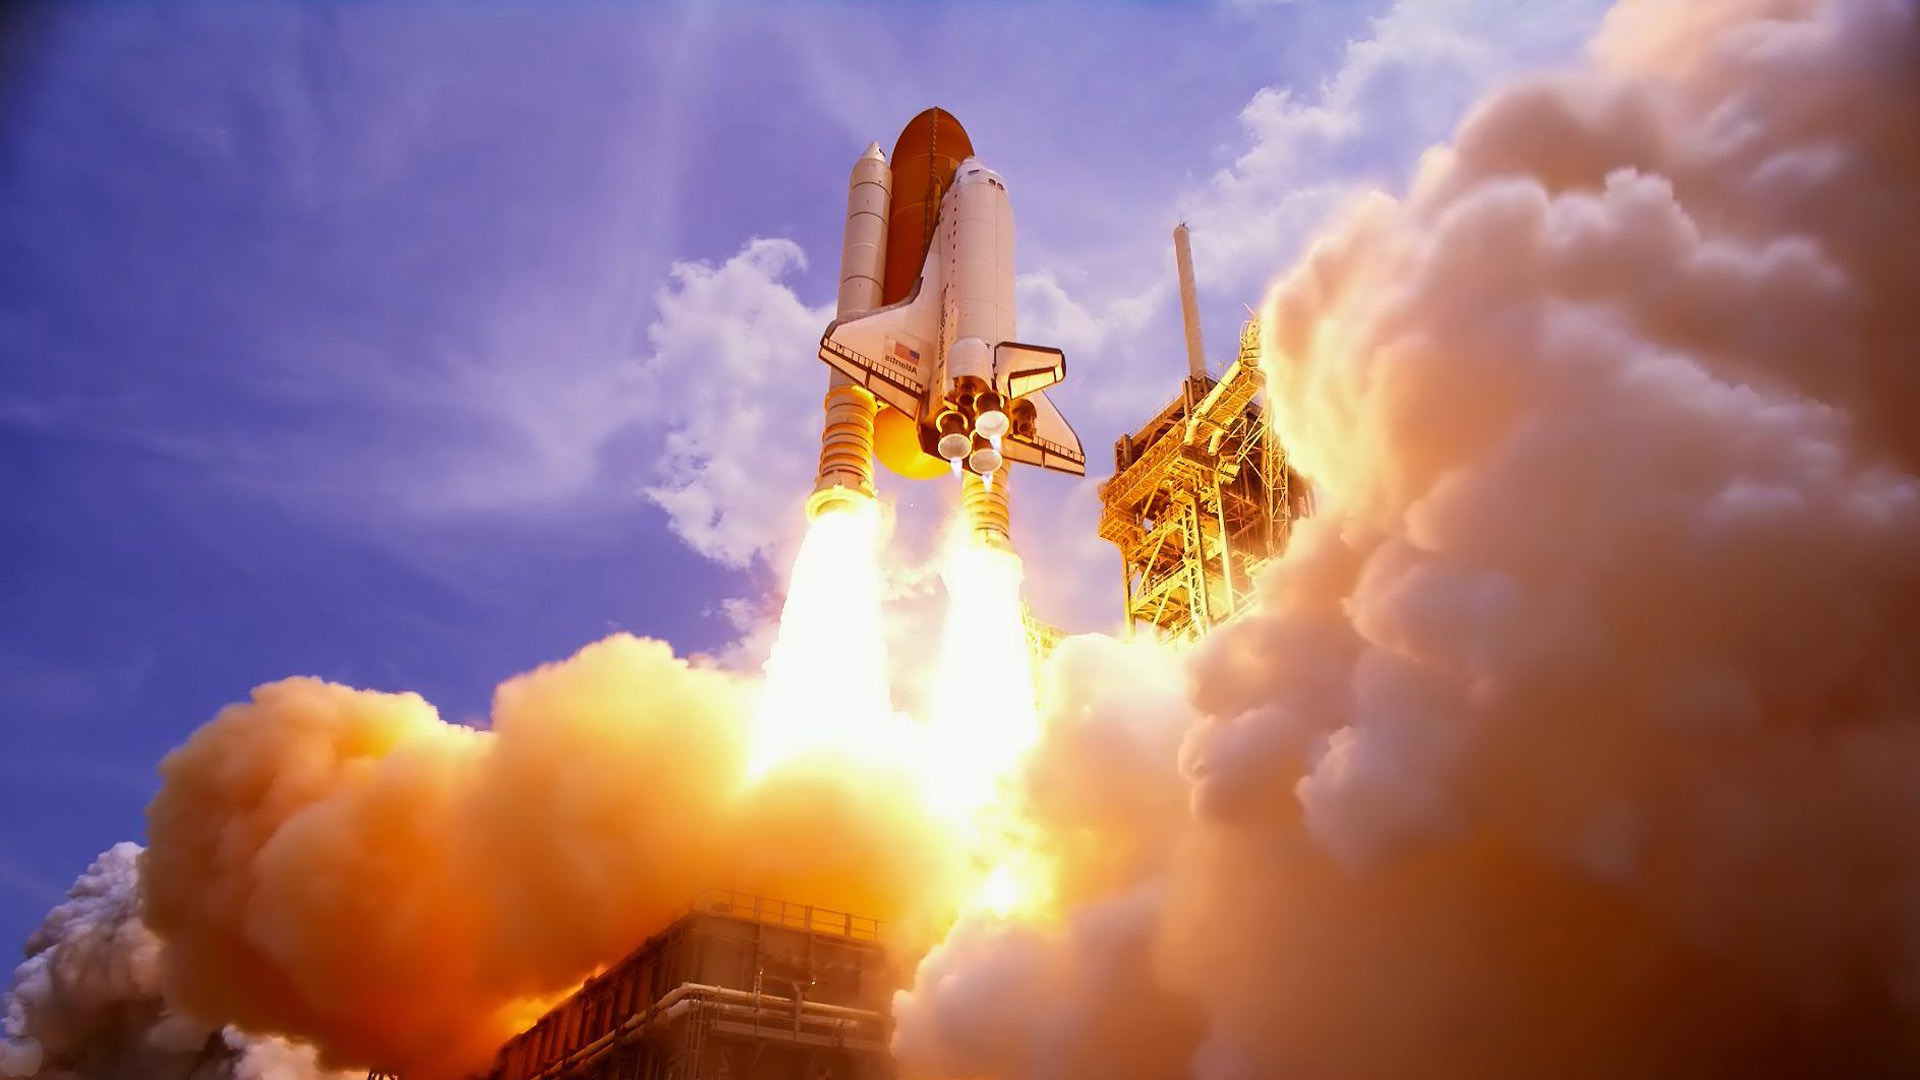 Pics Photos   Space Shuttle Wallpaper 1920 1080 1920x1080